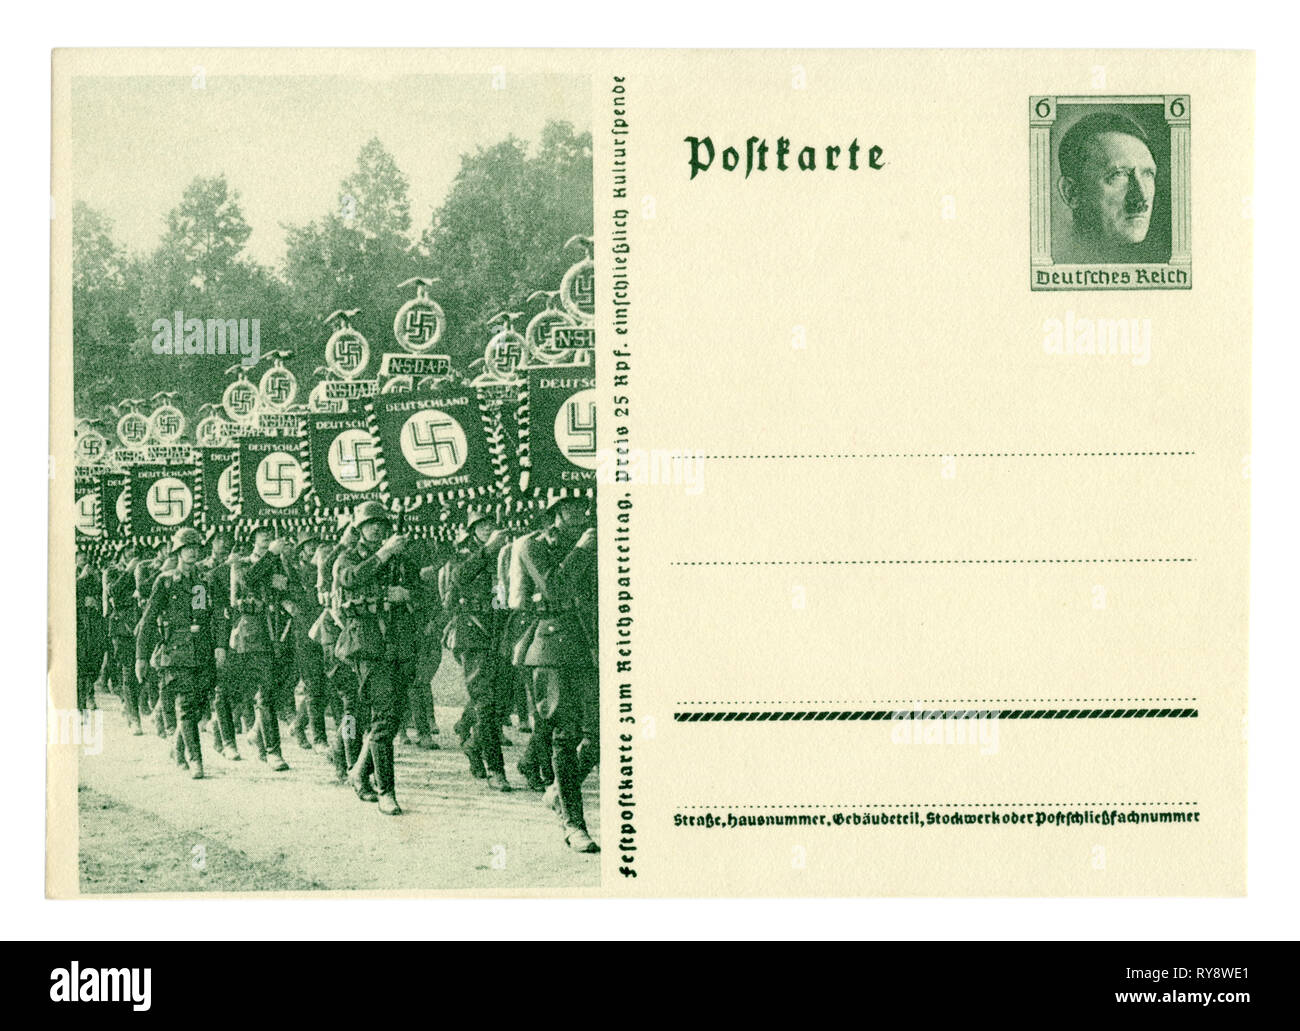 German historical postal card: The 9th party Congress of the NSDAP in Nuremberg in 1937, waffen SS units on the March with flags. Germany, Third Reich - Stock Image